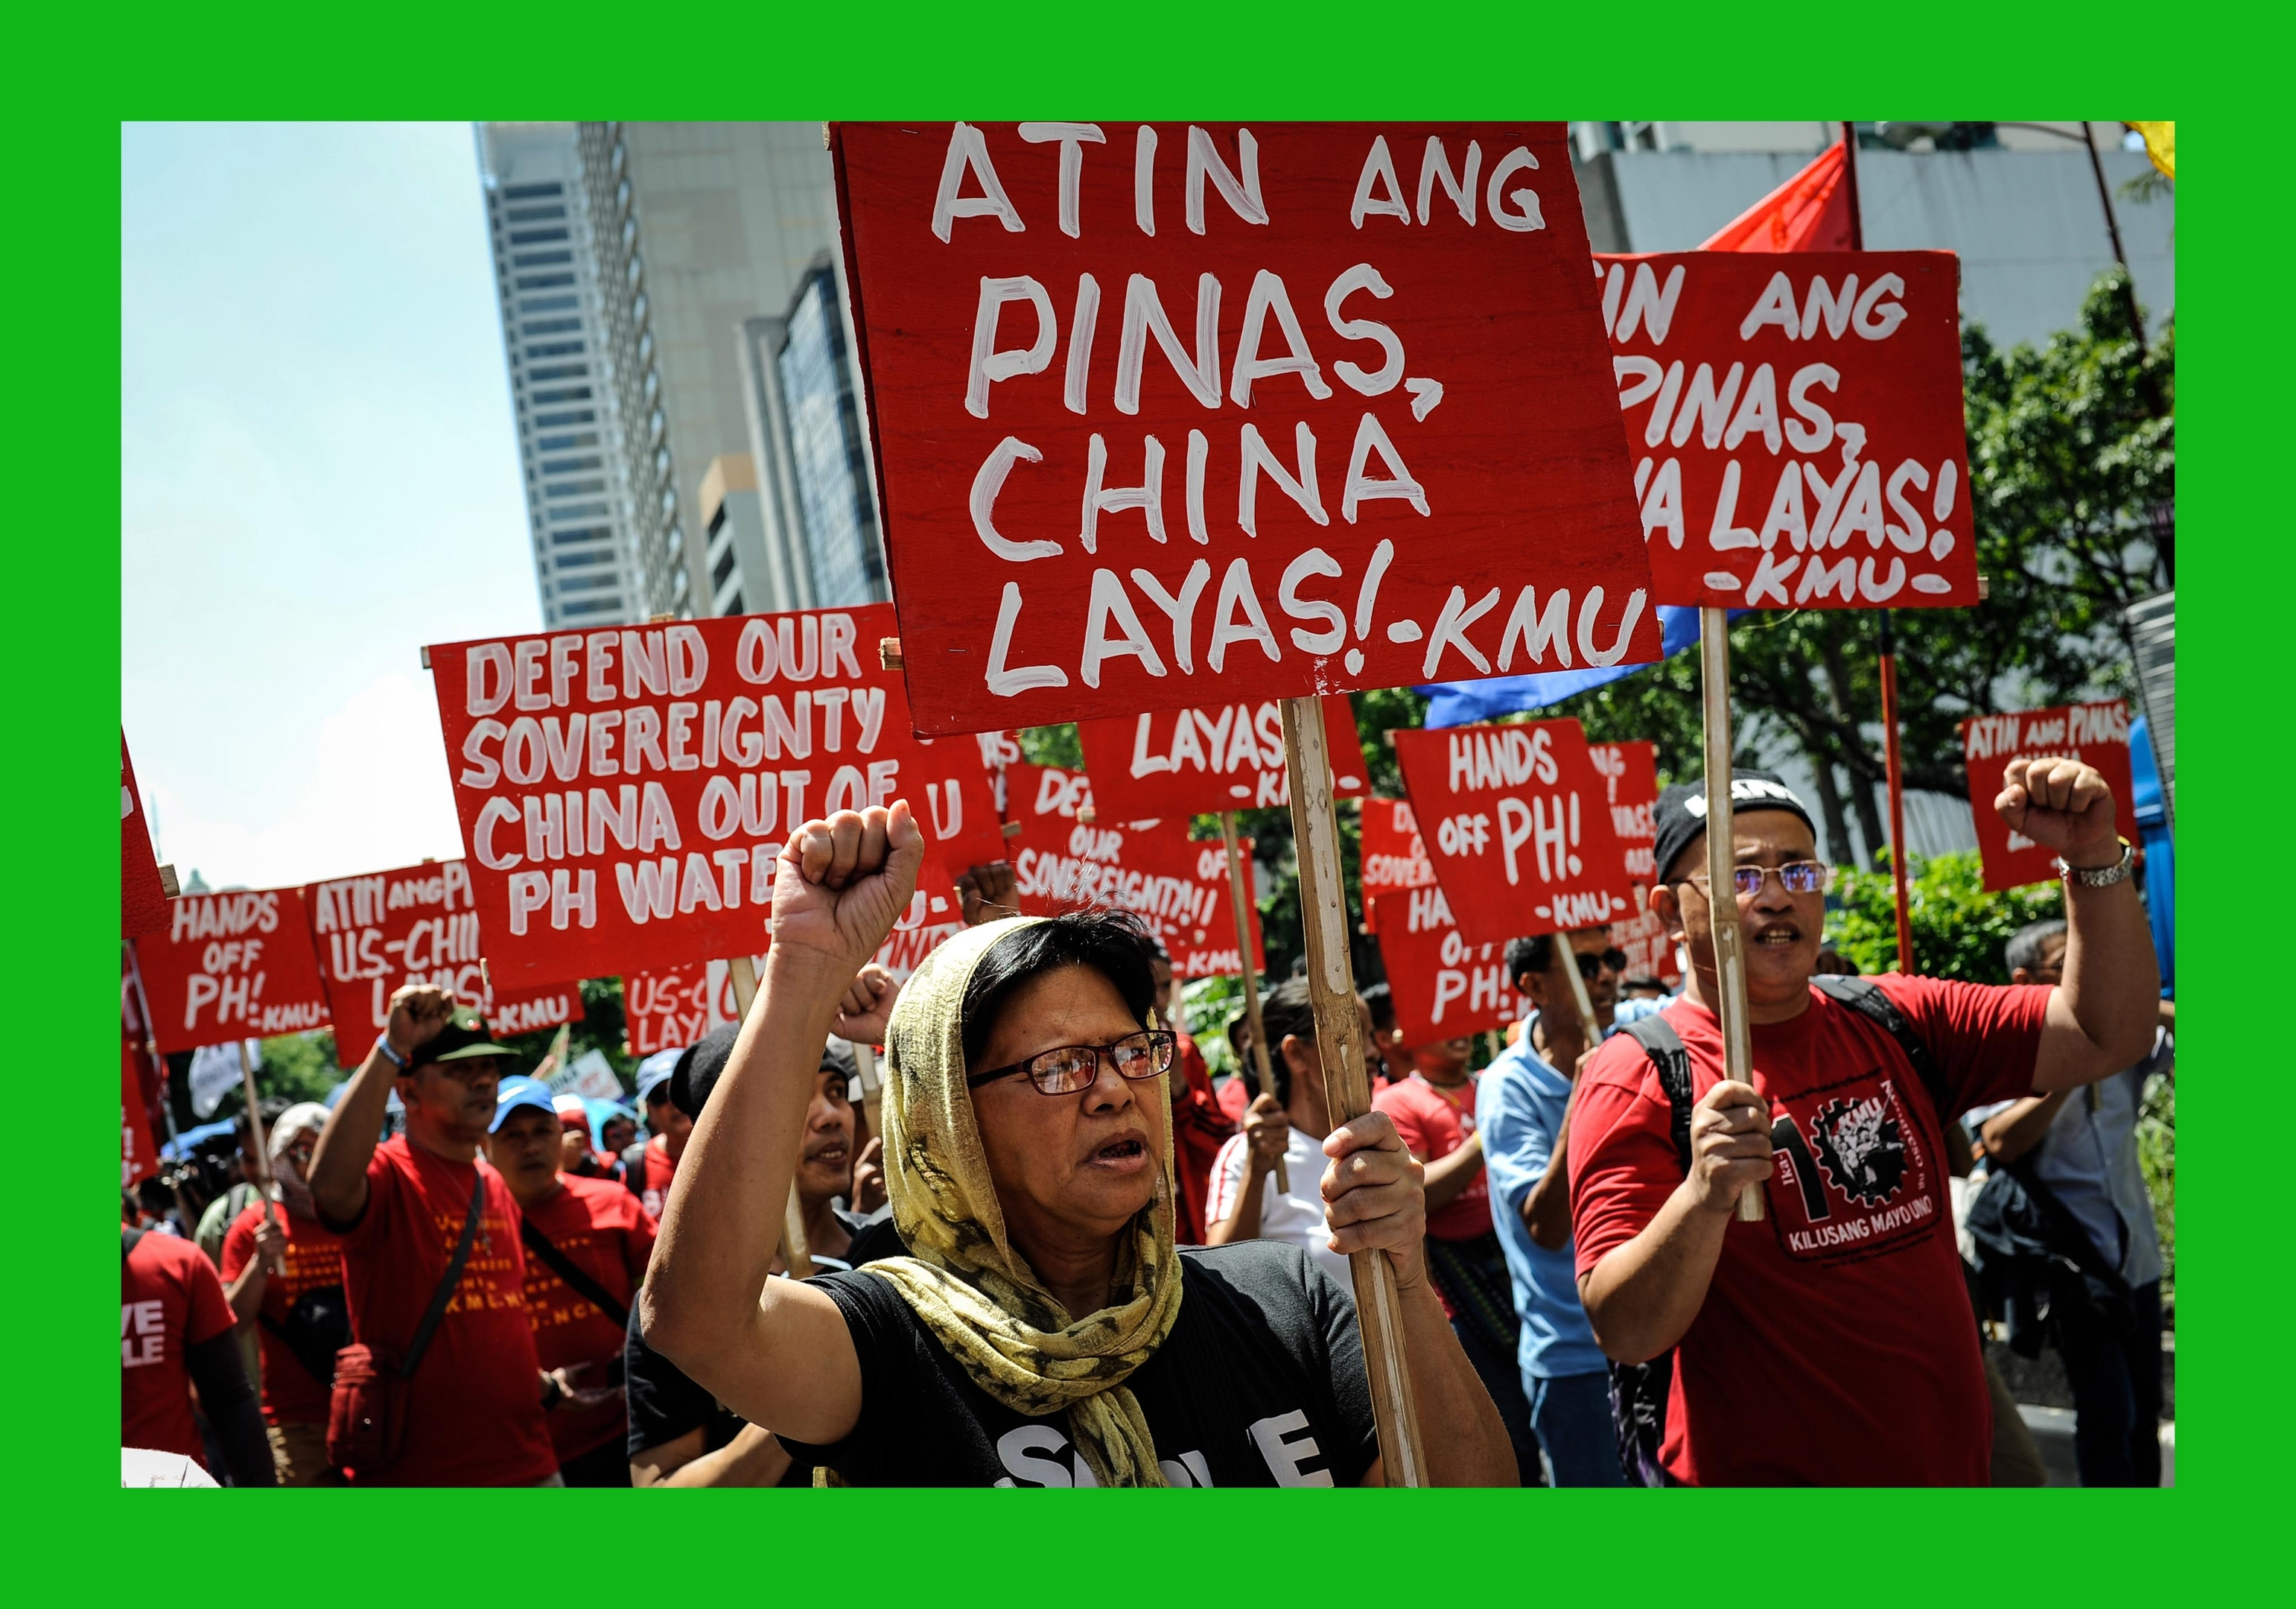 Anti China protesters mount a rally against China's territorial claims in the Spratlys group of islands in the South China Sea in front of the Chinese Consulate on July 12, 2016 in Makati, Philippines.